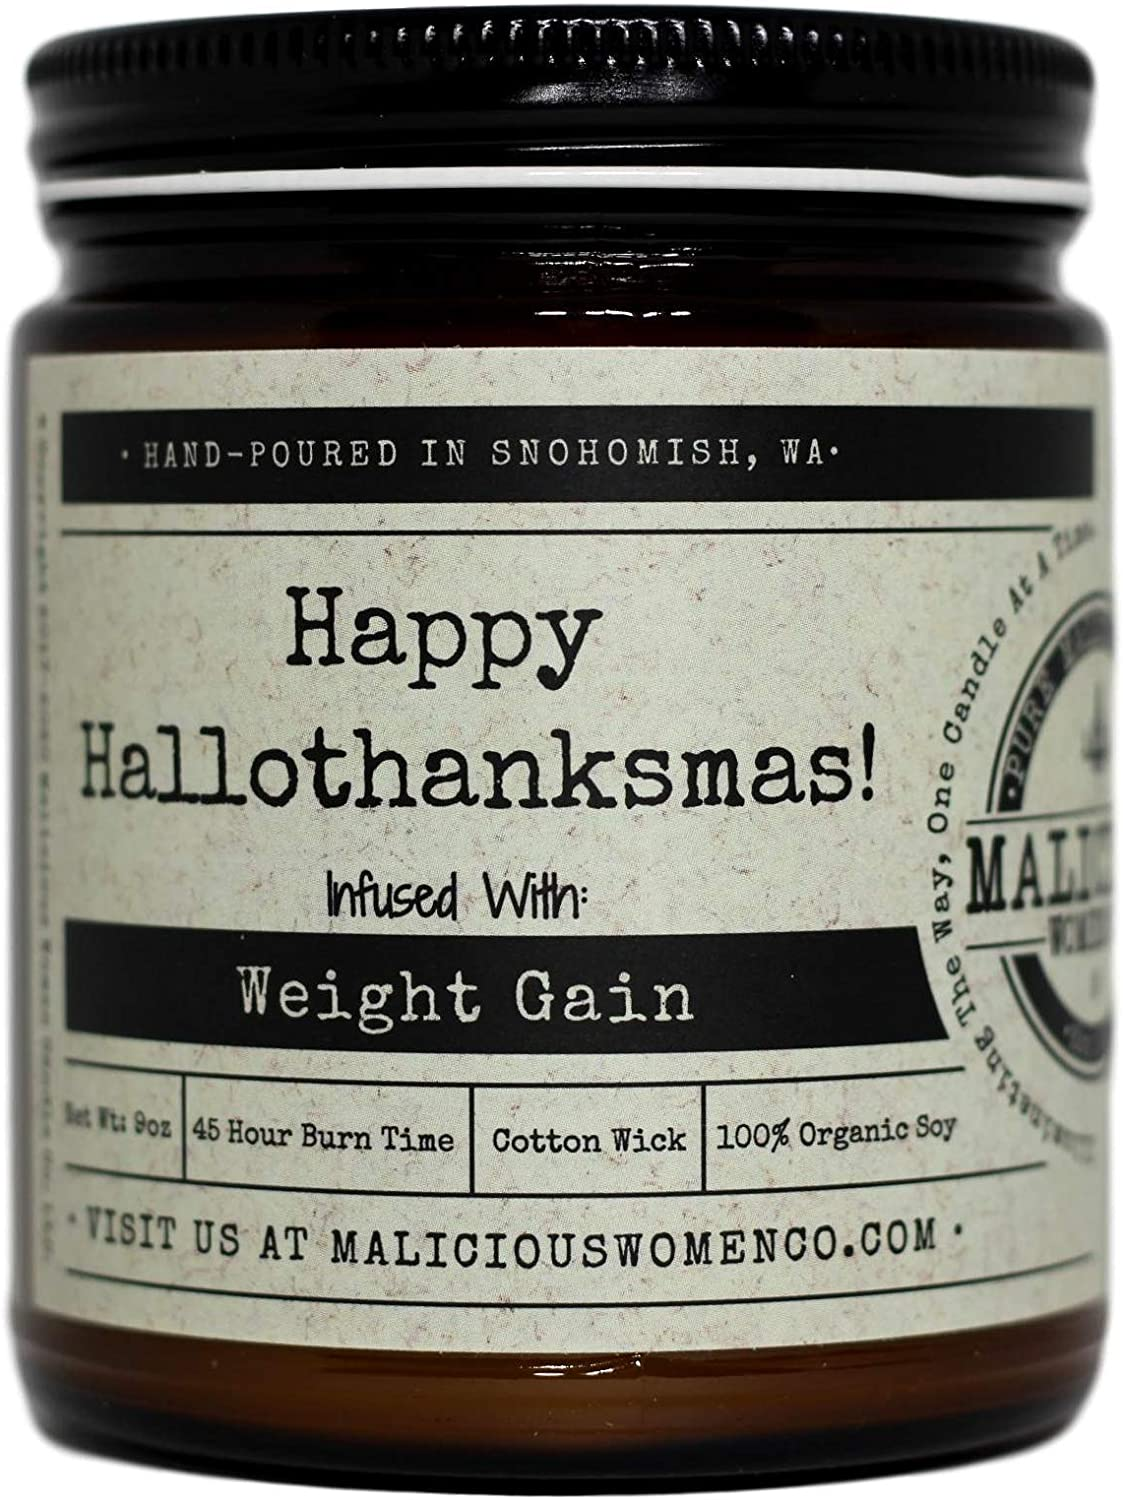 Malicious Women Candle Co - Happy Hallothanksmas, Pumpkin, Apple & Ginger Infused with Weight Gain, All-Natural Organic Soy Candle, 9 oz